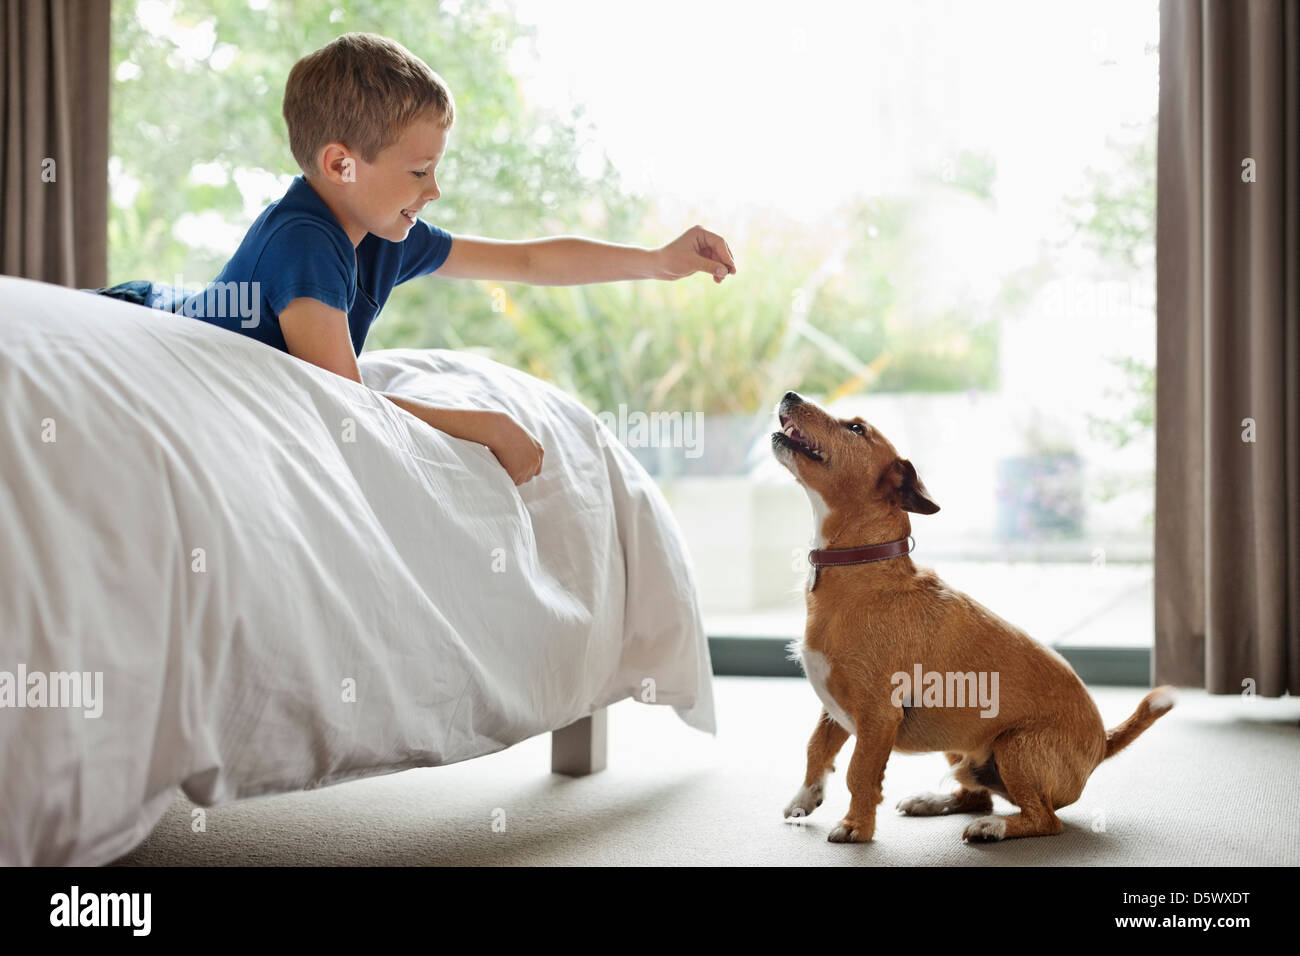 Boy giving dog treat in bedroom - Stock Image